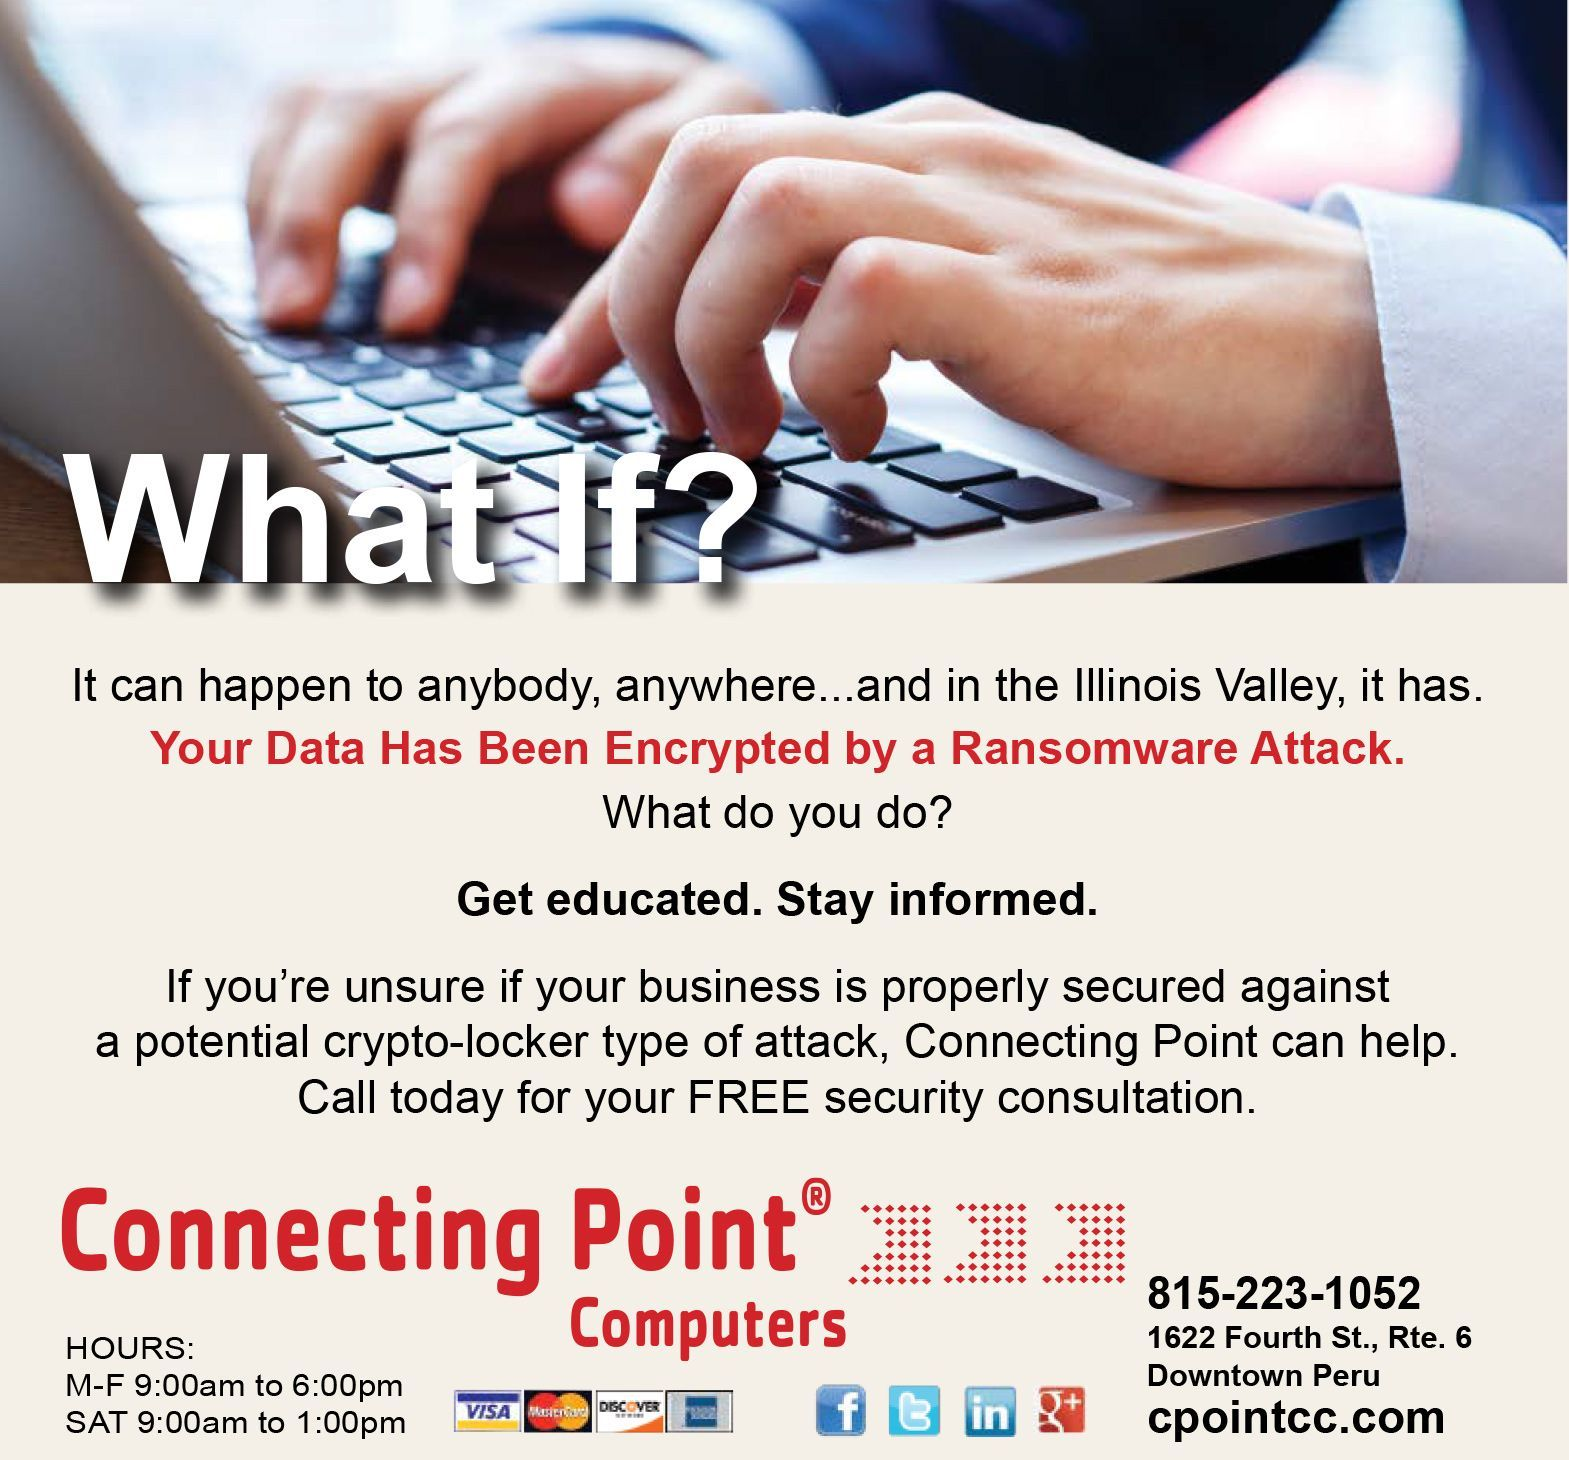 What If? LS-336269 It can happen to anybody, anywhere...and in the Illinois Valley, it has. Your Data Has Been Encrypted by a Ransomware Attack. What do you do? Get educated. Stay informed. If you're unsure if your business is properly secured against a potential crypto-locker type of attack, Connecting Point can help. Call today for your FREE security consultation.